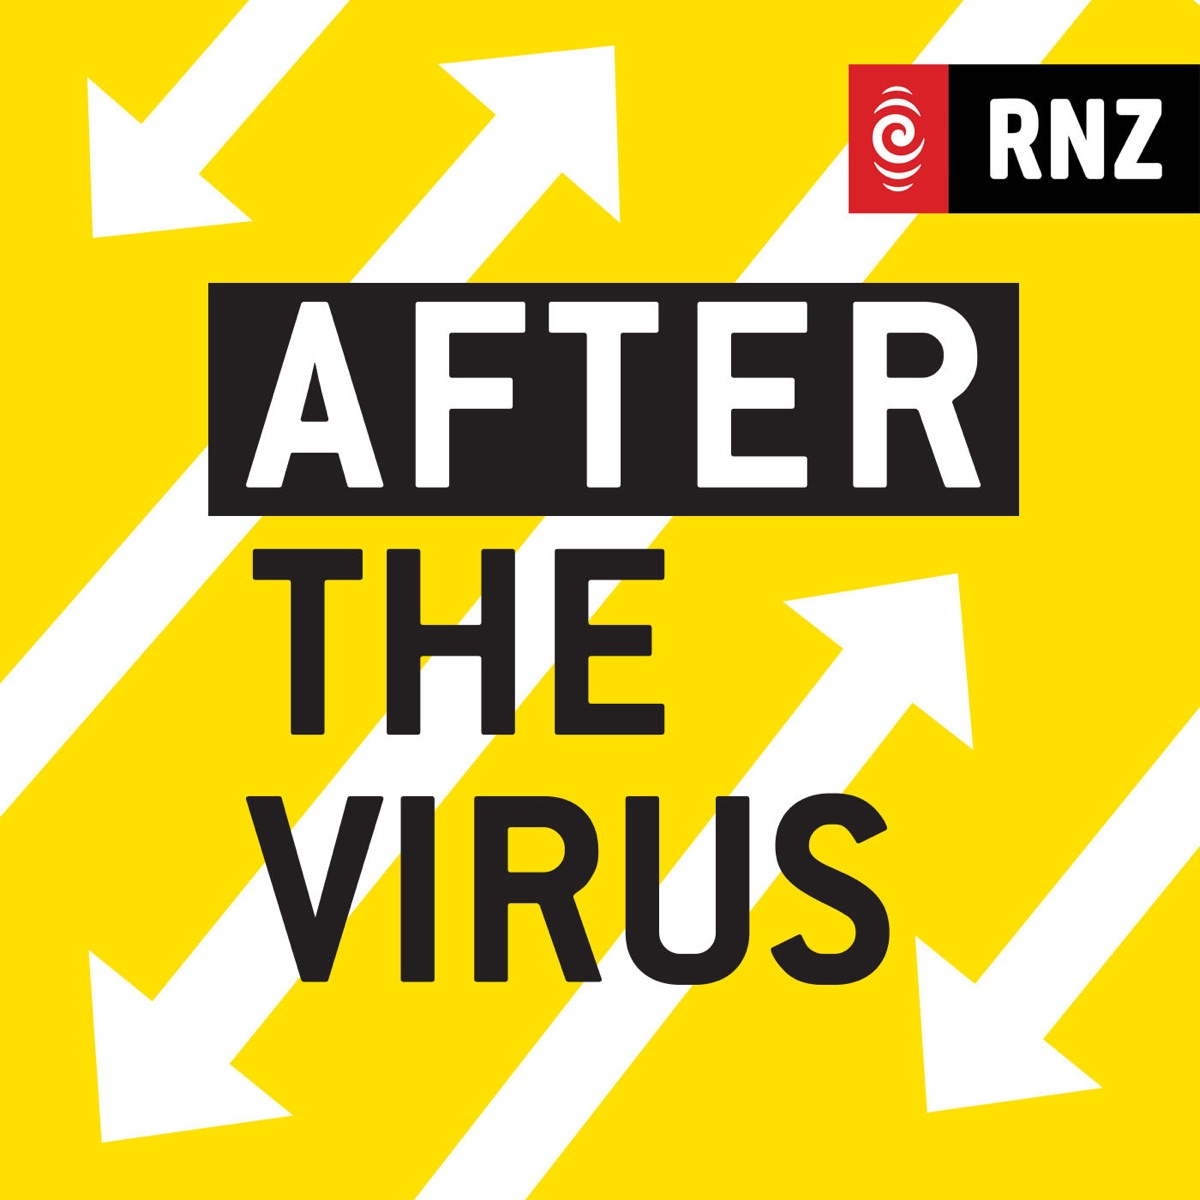 RNZ: After the Virus